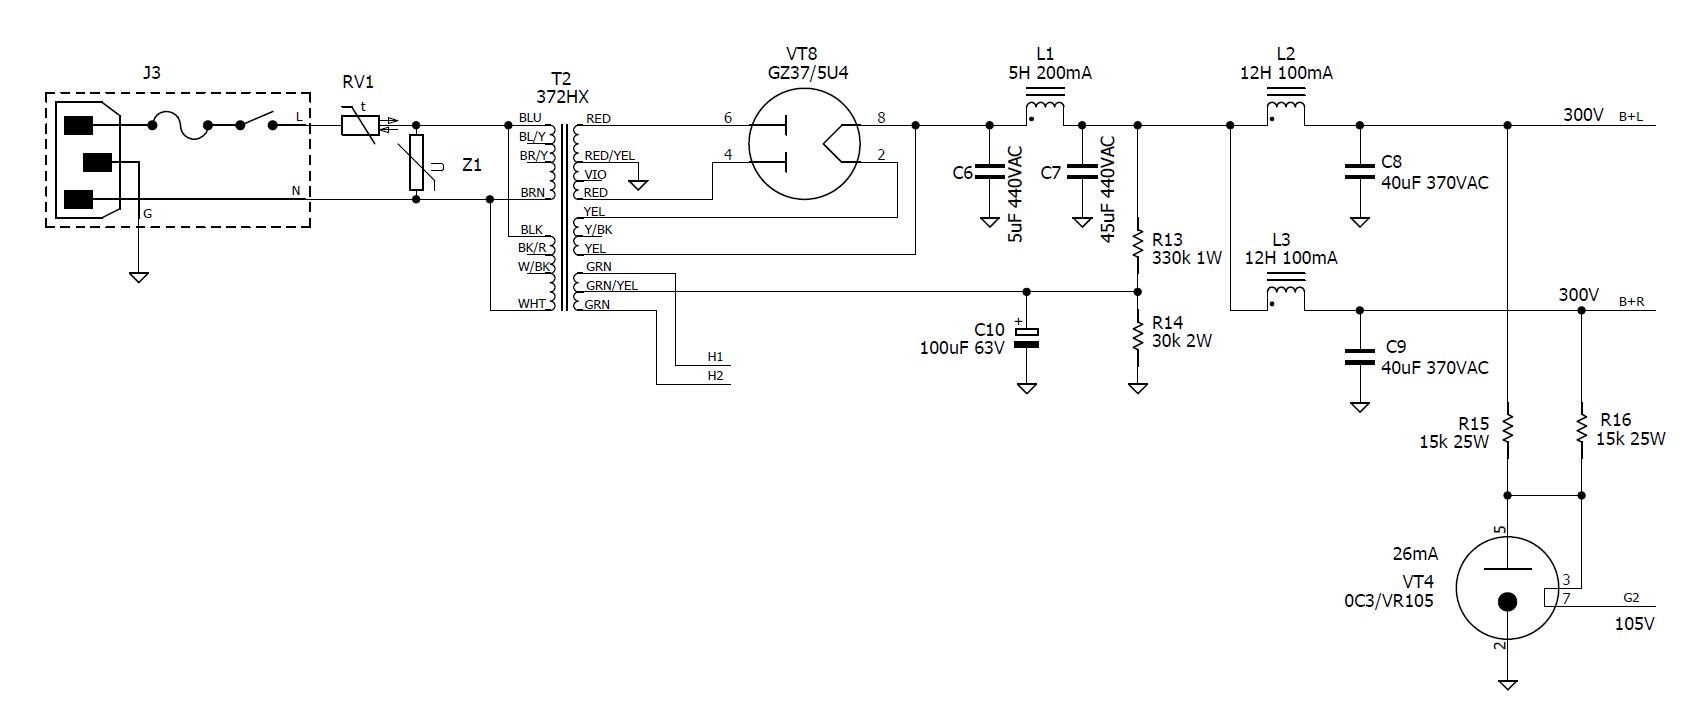 R120 Se Amp Tube Rectifier Schematic Further Power Lifier Schematics Using A Hammond 372hx Transformer B Came Out Spot On The Simulated Result Of 300v Input Pentode Screens Are Supplied By Vr Shunt Reg